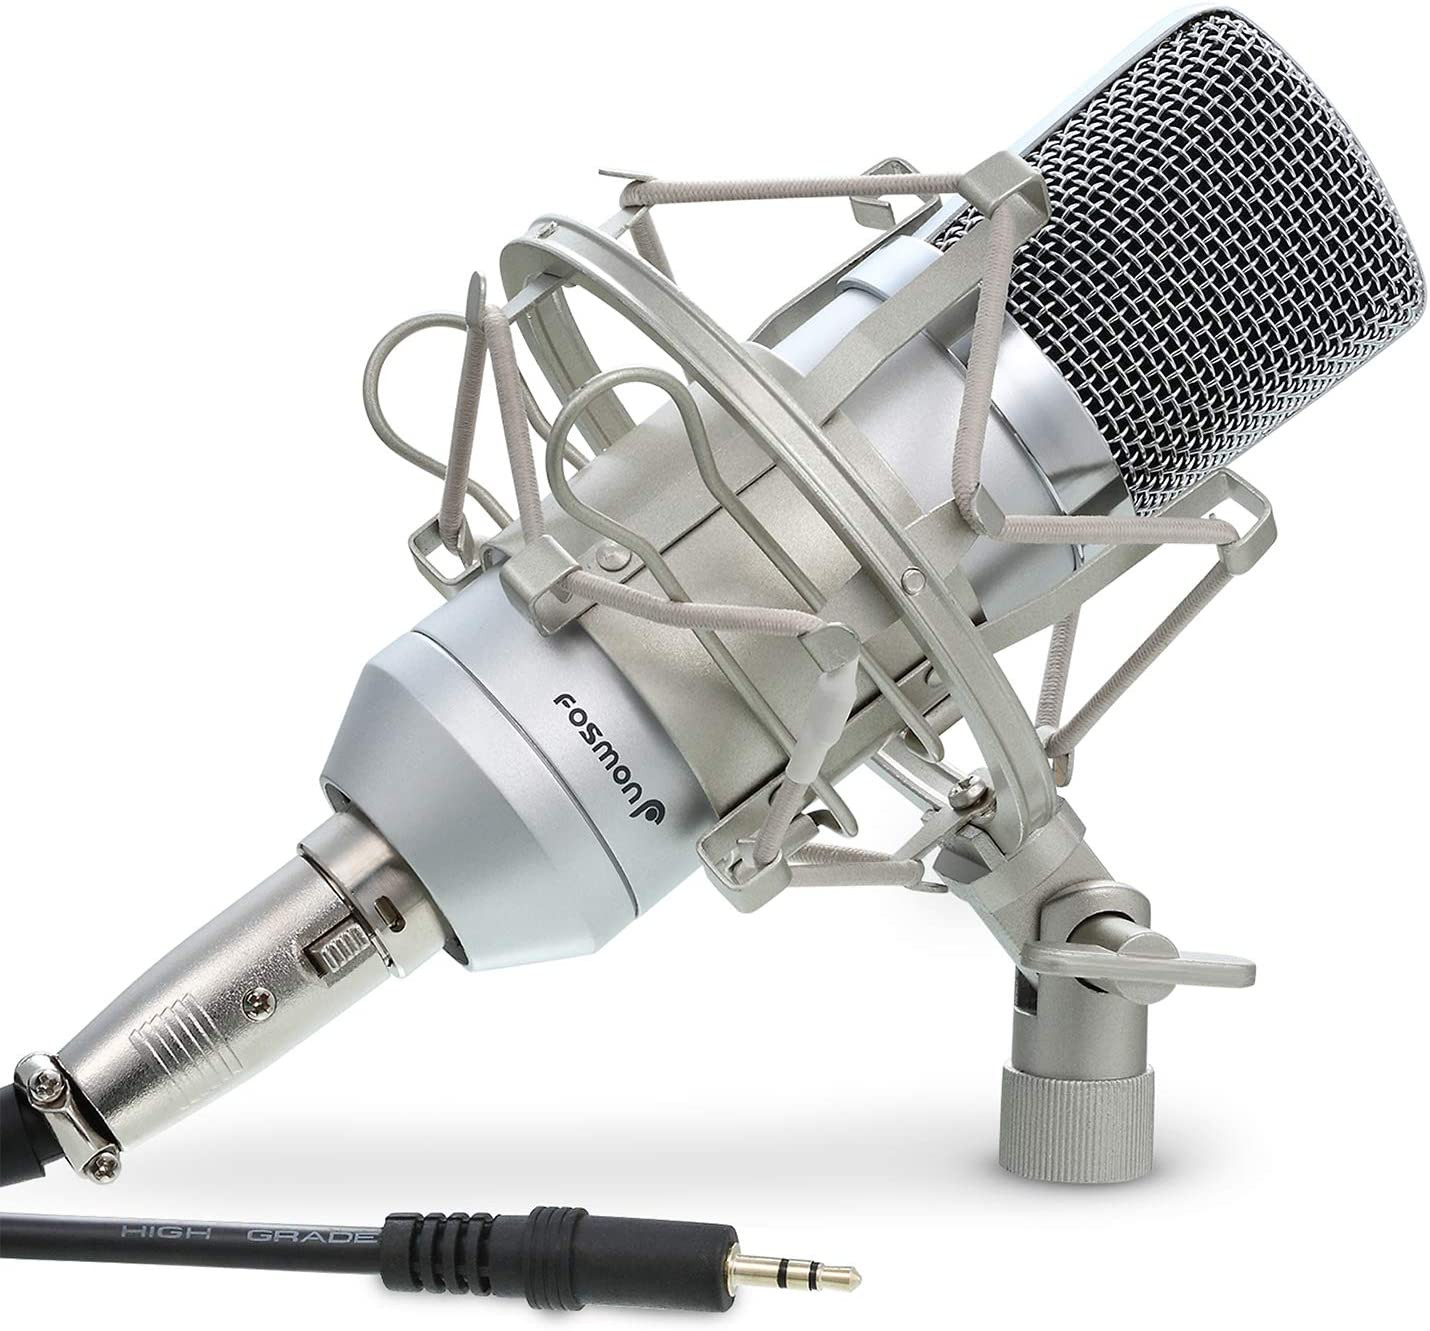 Fosmon Cardioid Condenser Microphone XLR, (Noise Deduction) 360 Degree Uni-Directional Voice Recording with Mount & Windscreen for PC, Gaming, Broadcasting, Podcasting, Studio, YouTube & Tiktok Video